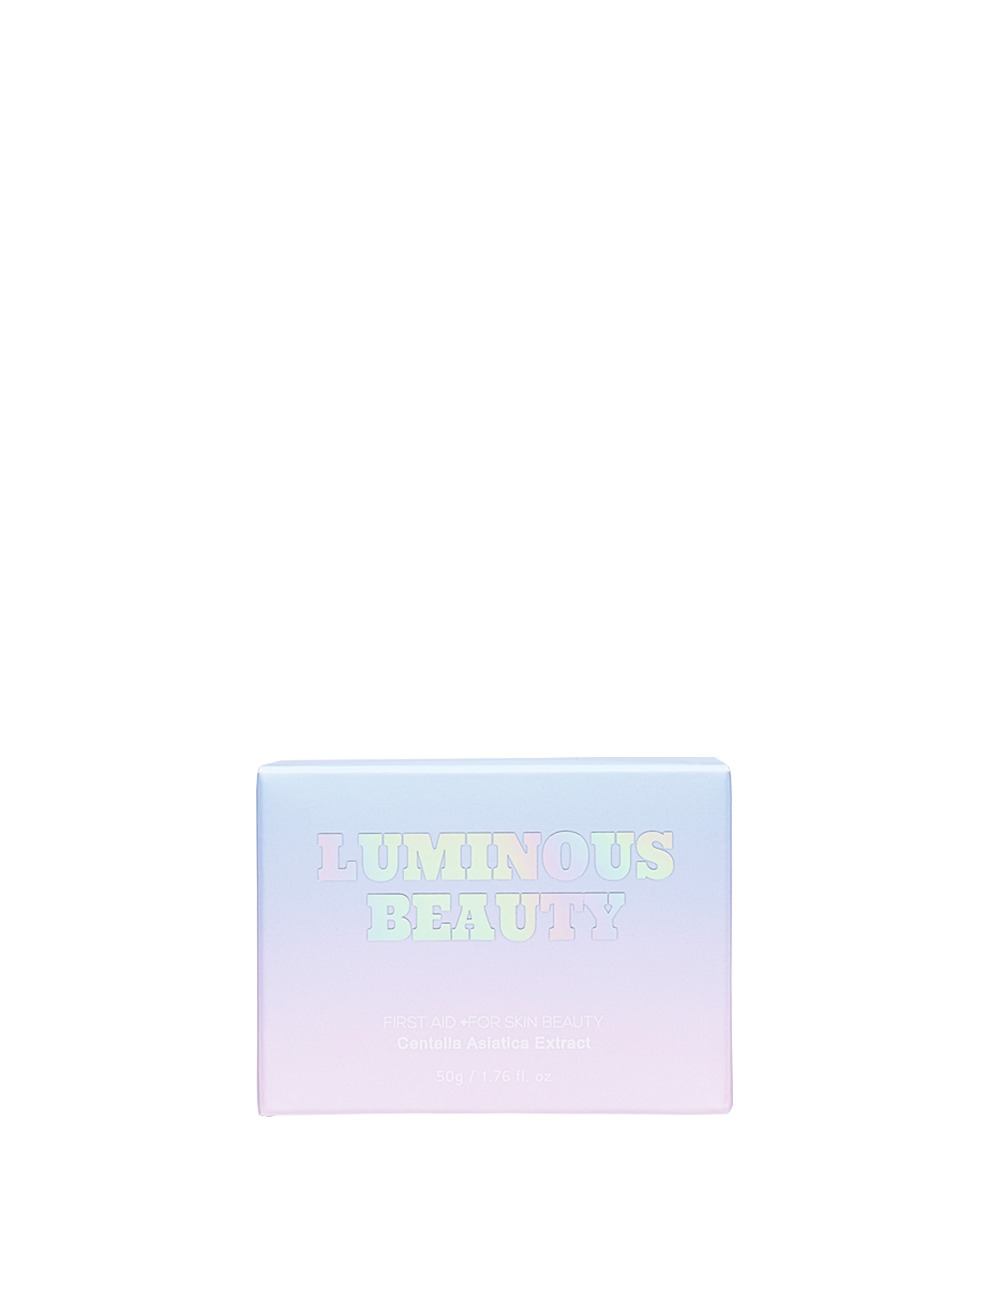 [LUMINOUS BEAUTY] WATER CICA GEL CREAM - ディアシスター (DEAR SISTER) 公式サイト